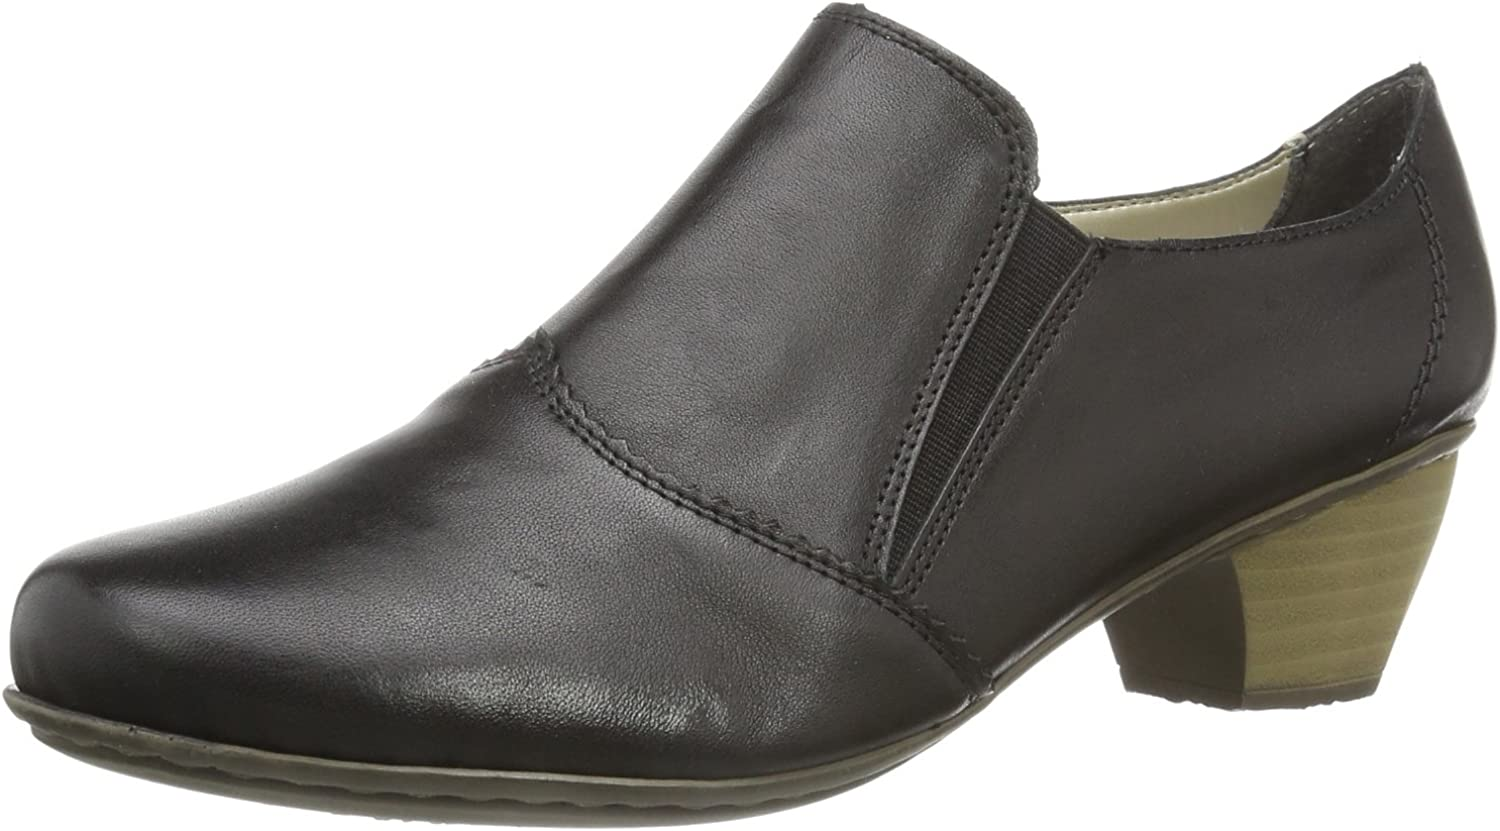 Rieker Women Pumps black, (black) 41751-01